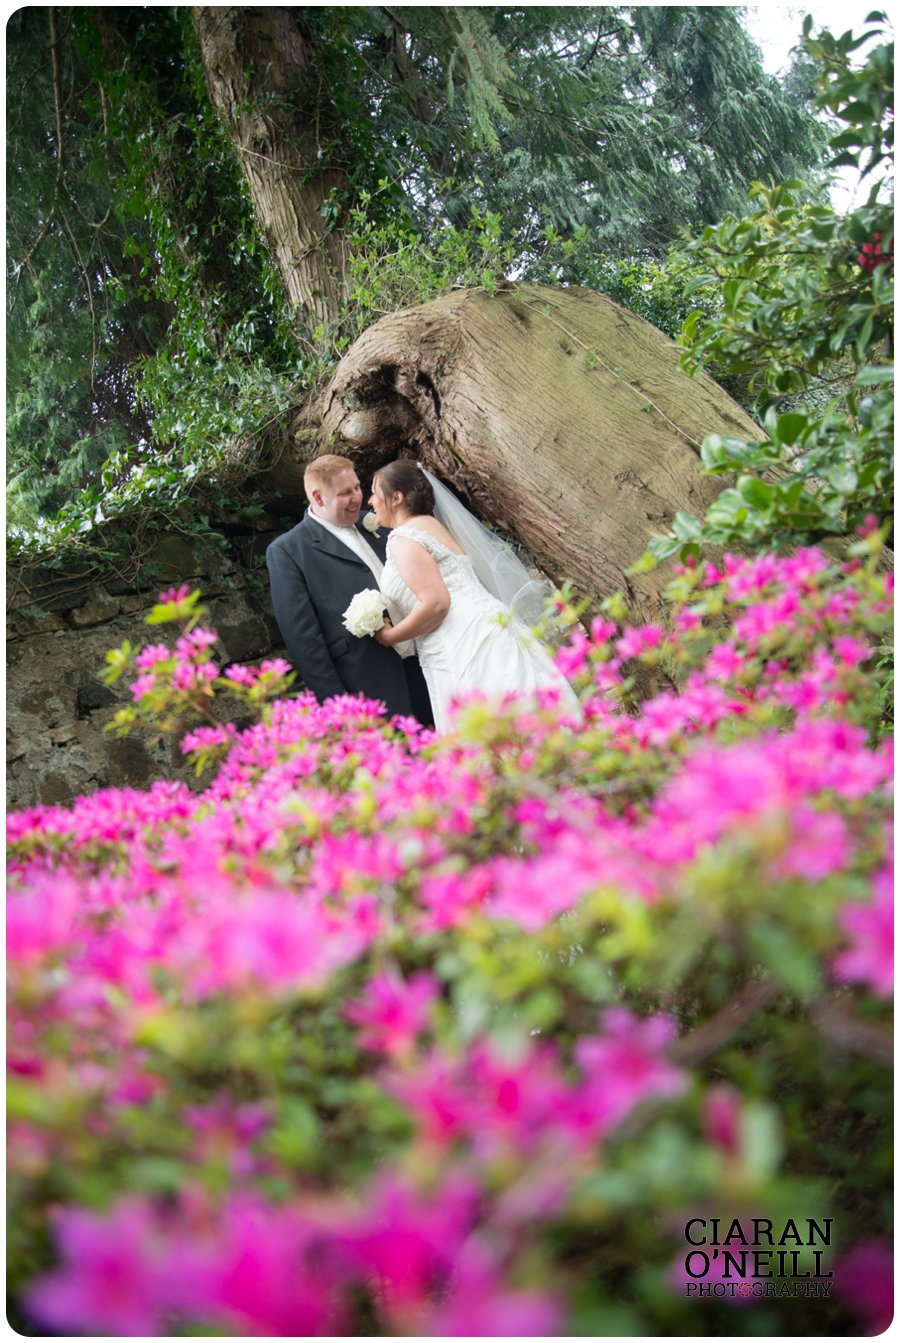 Angela & Connor's wedding at Tullyglass Hotel by Ciaran O'Neill Photography 19